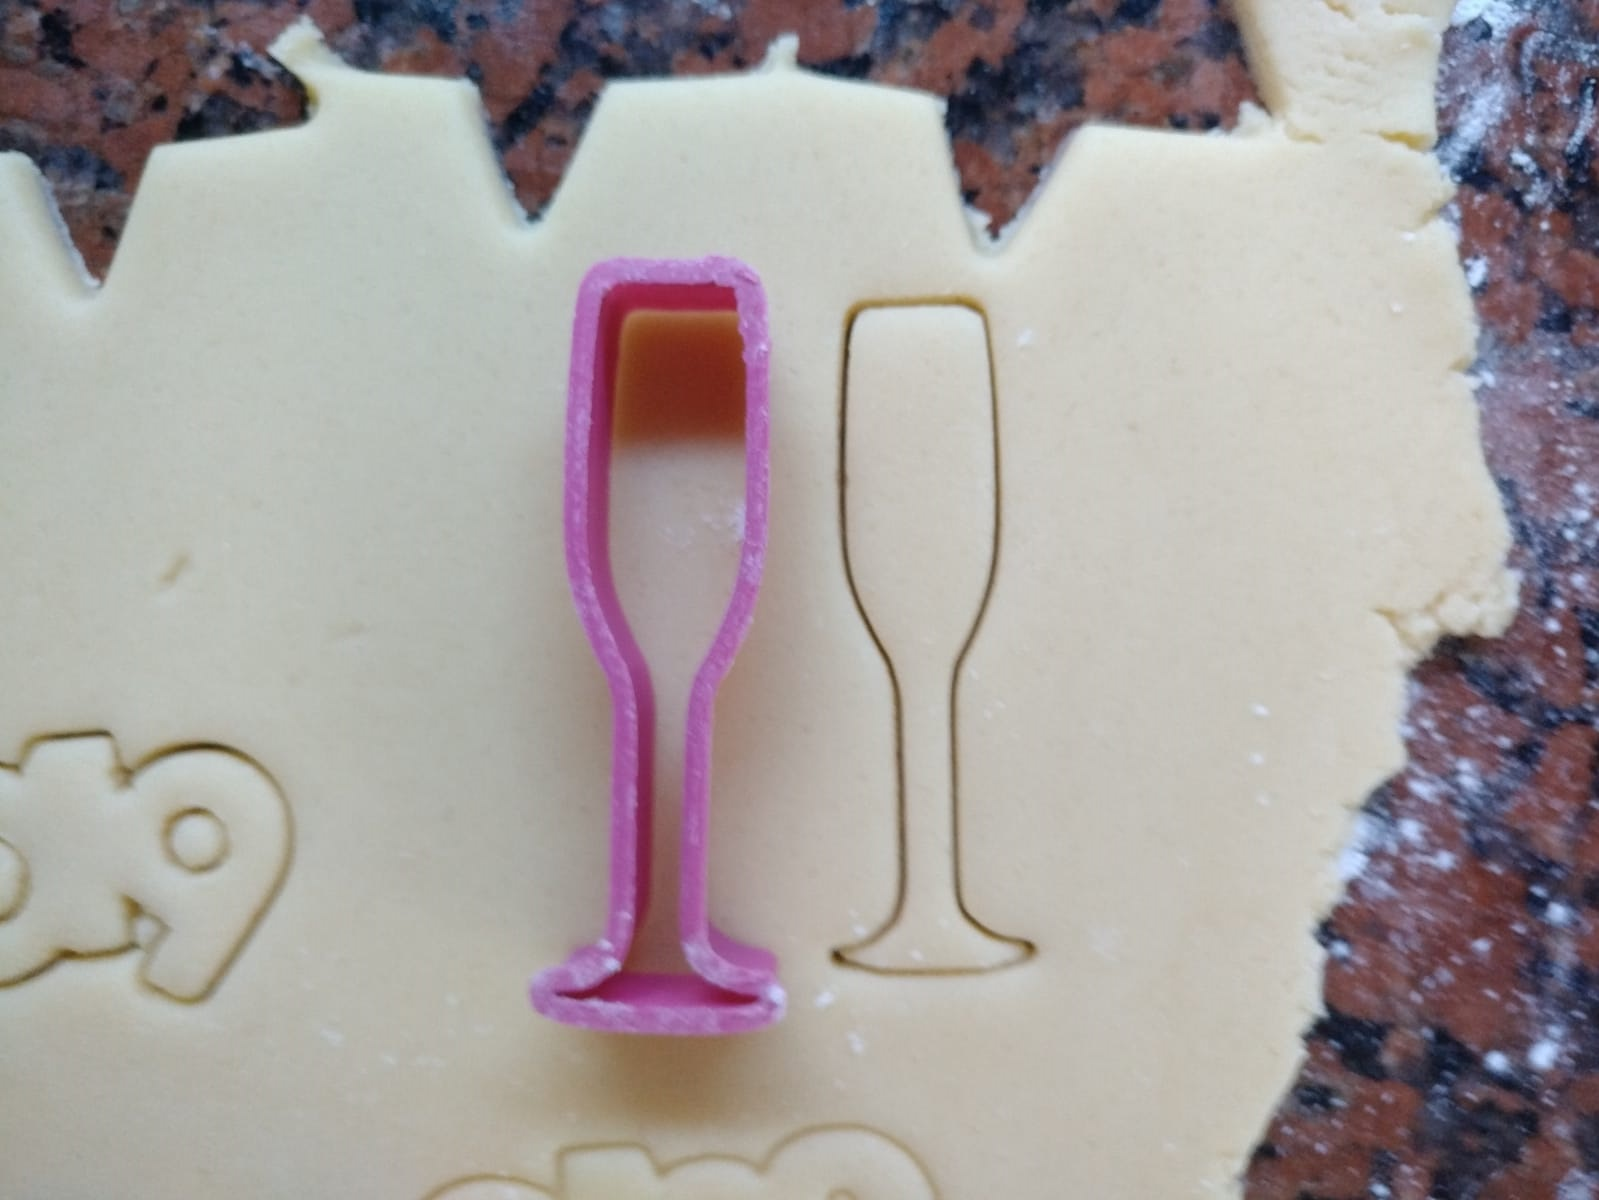 copa.jpg Download free STL file Champagne glass cookie cutter for new year • 3D printing object, Ragkov